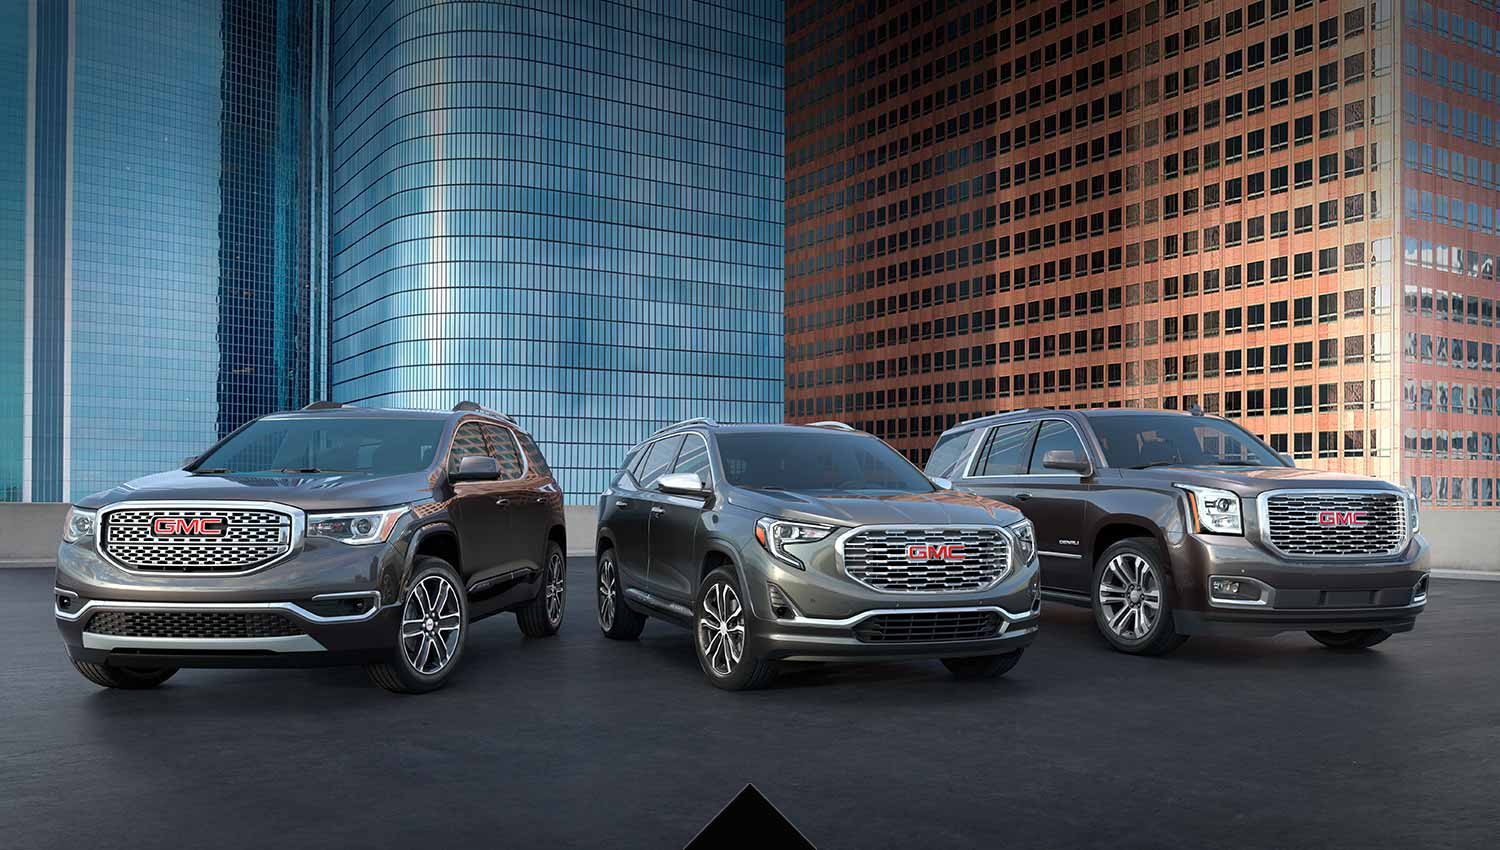 hight resolution of 2019 gmc suv lineup large retail event banner